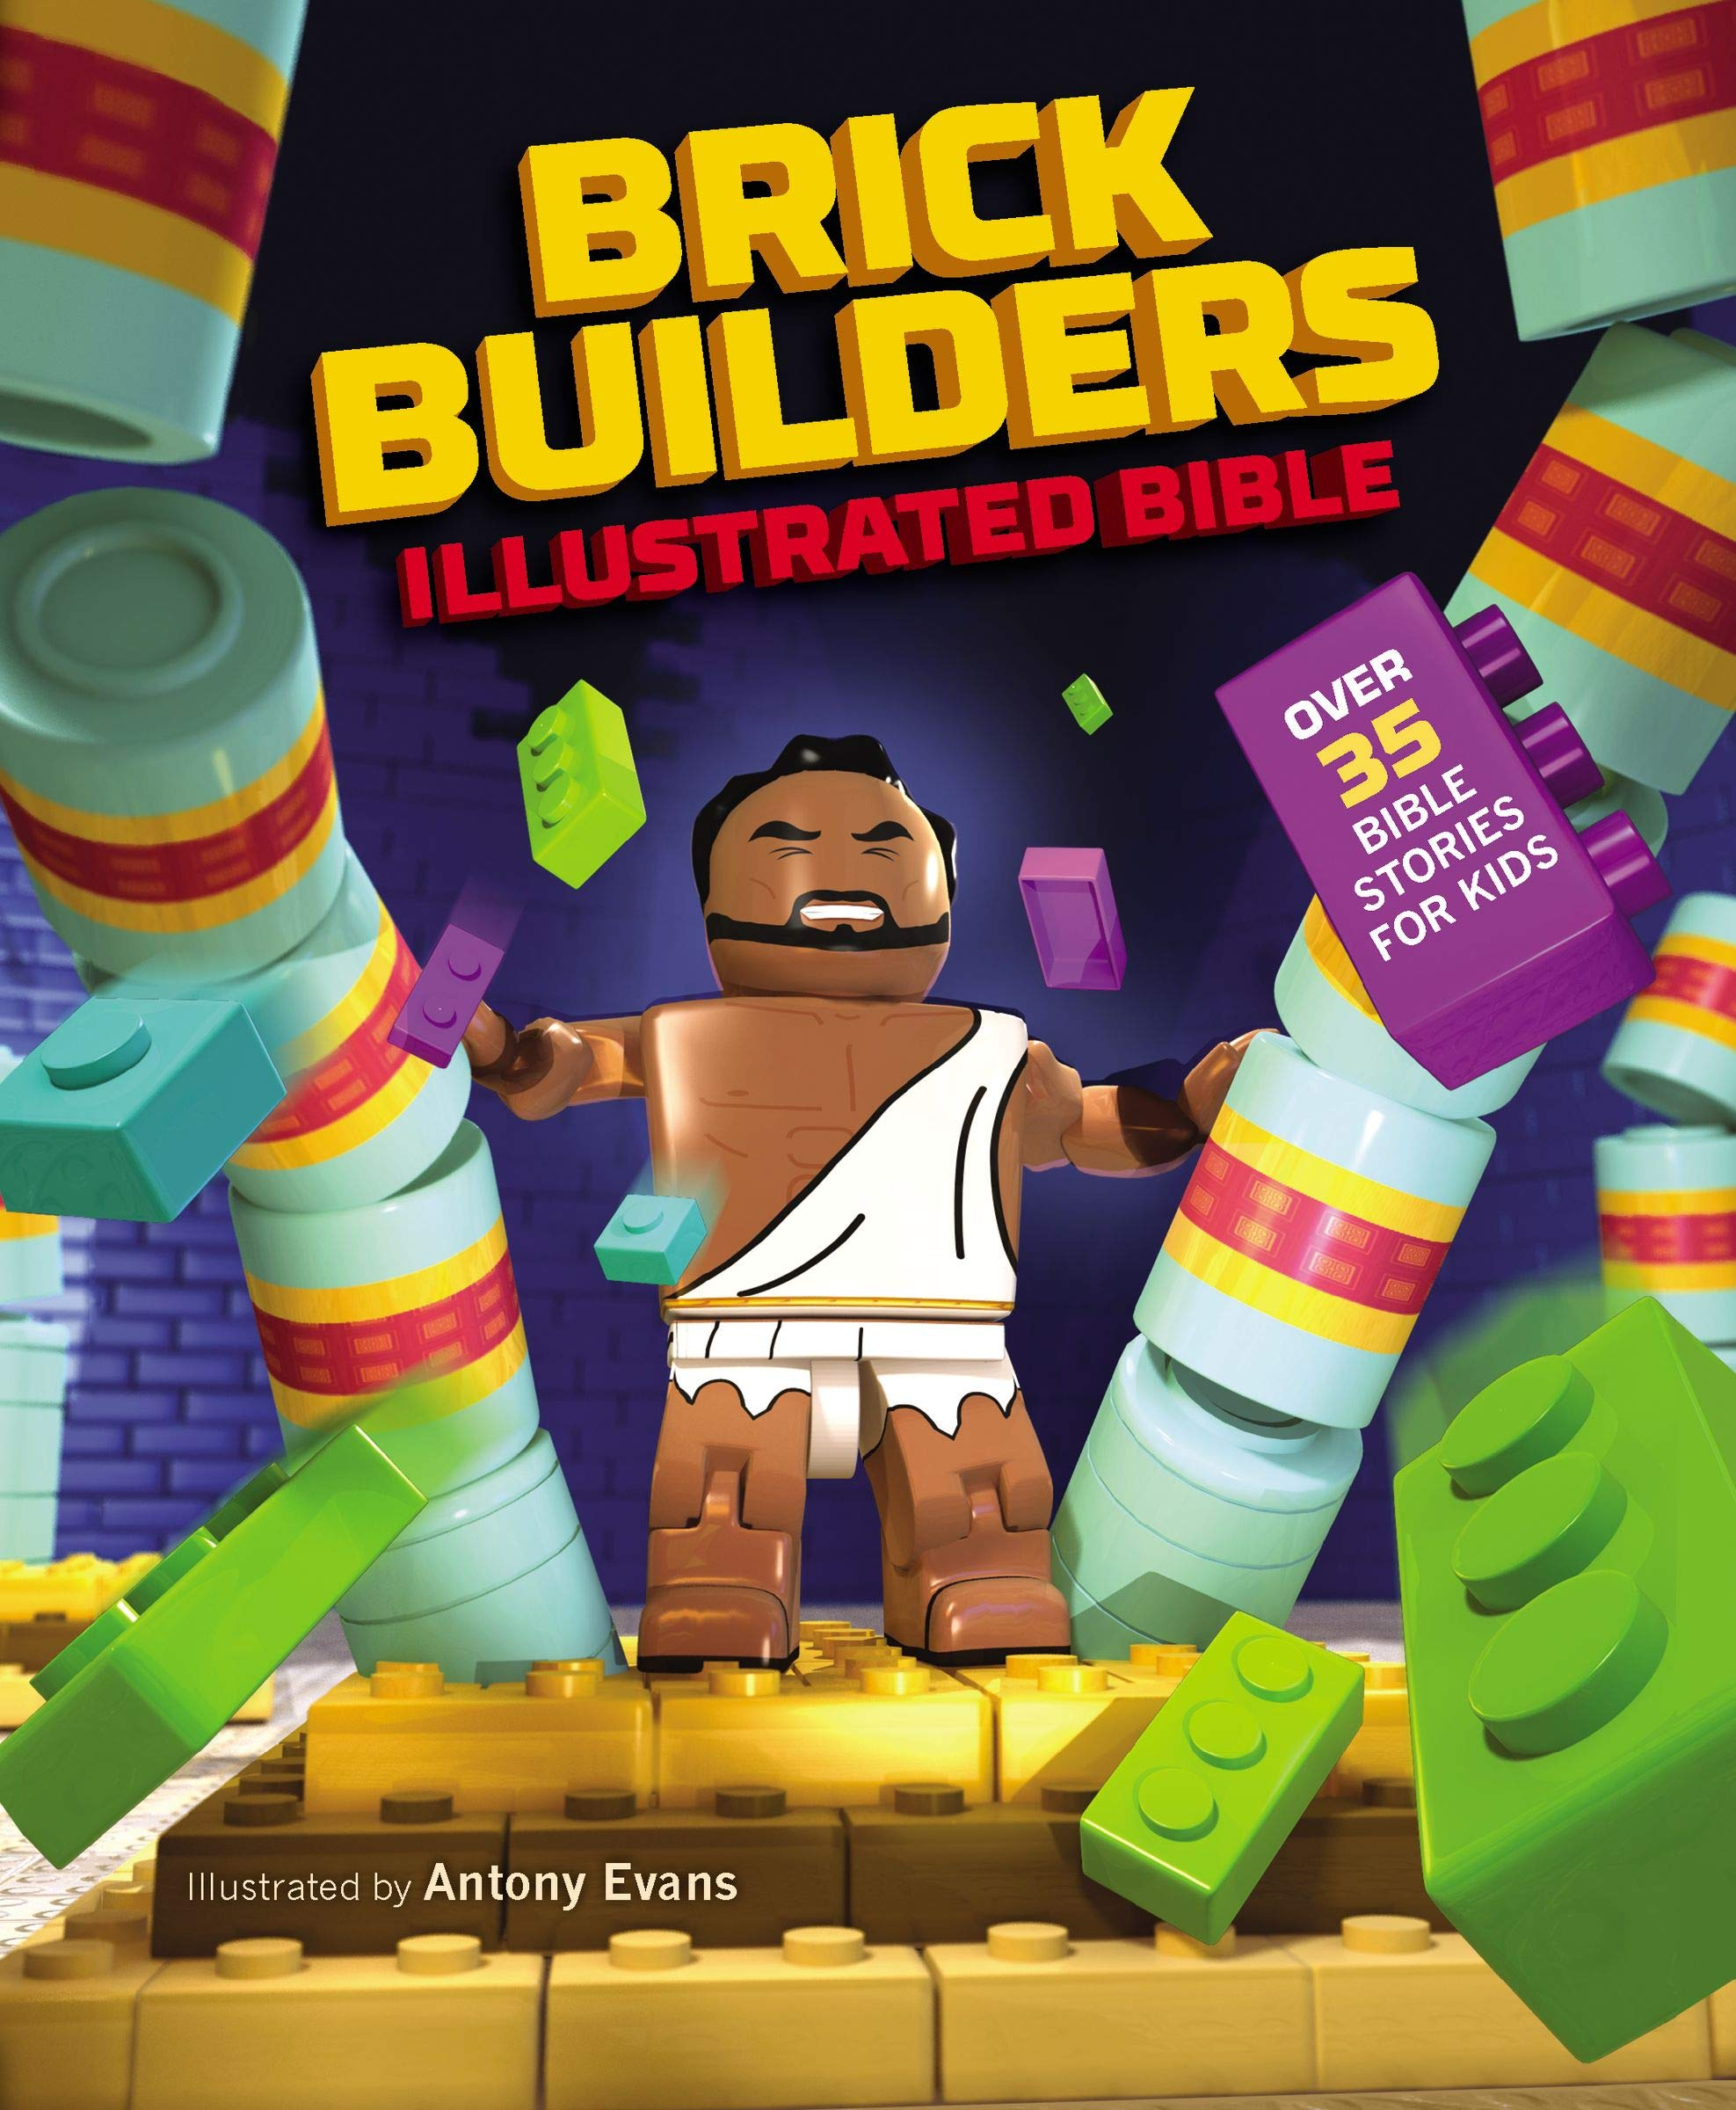 ROCKONLINE | New Creation Church | NCC | Joseph Prince | ROCK Bookshop | ROCK Bookstore | Star Vista | Children | Kids | Bible Story | Illustrated Bible | Christian Living | Boardbook | Bible | Brick Builder's Illustrated Bible, hardcover | Free delivery for SG orders above $50.